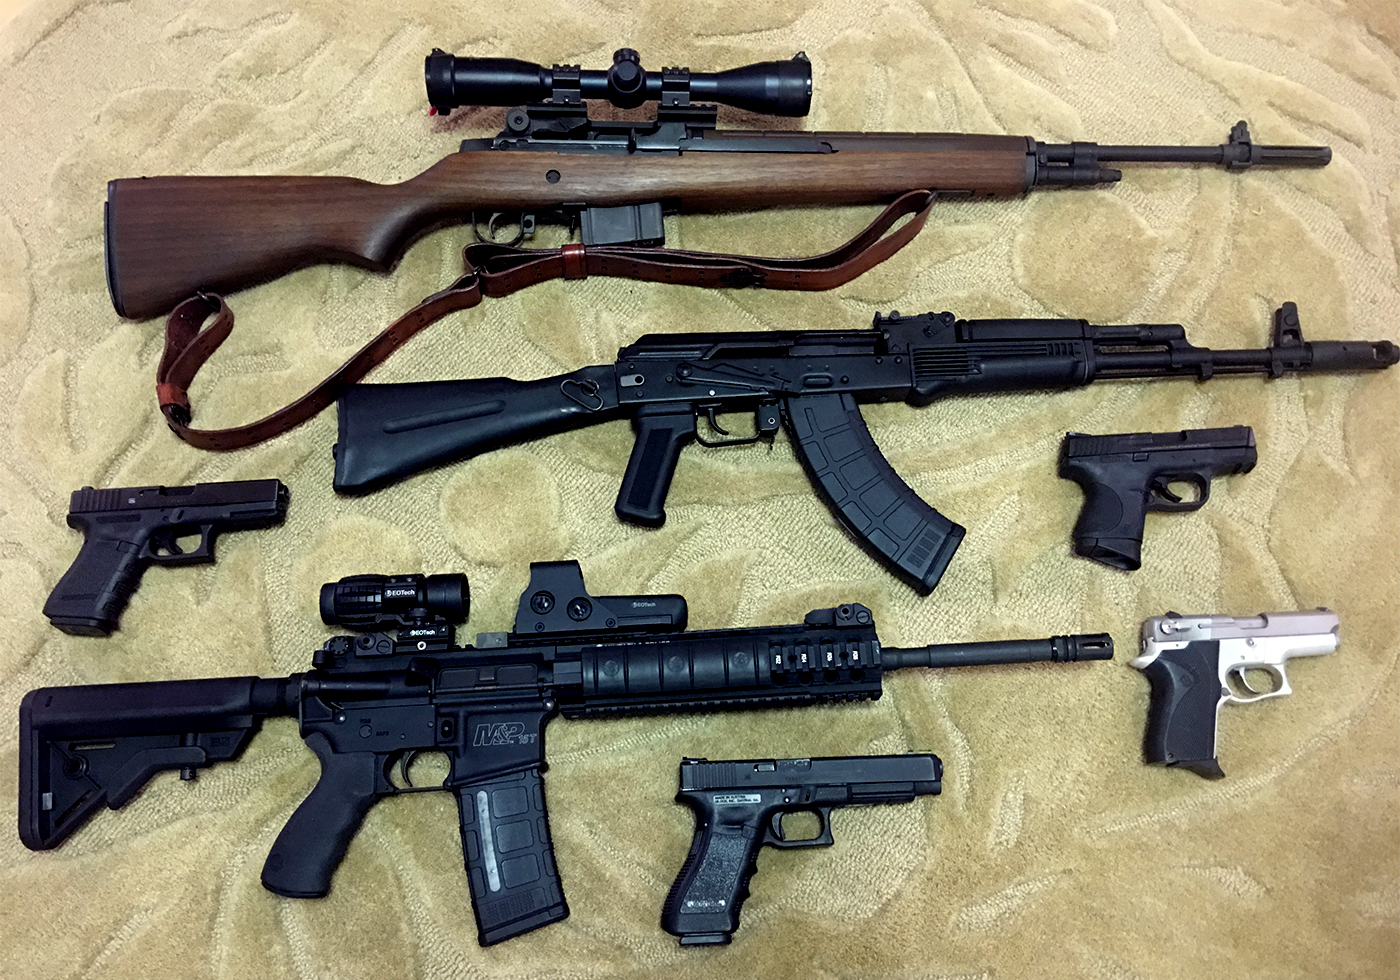 The steps you need to take to own a firearm in Hawaii